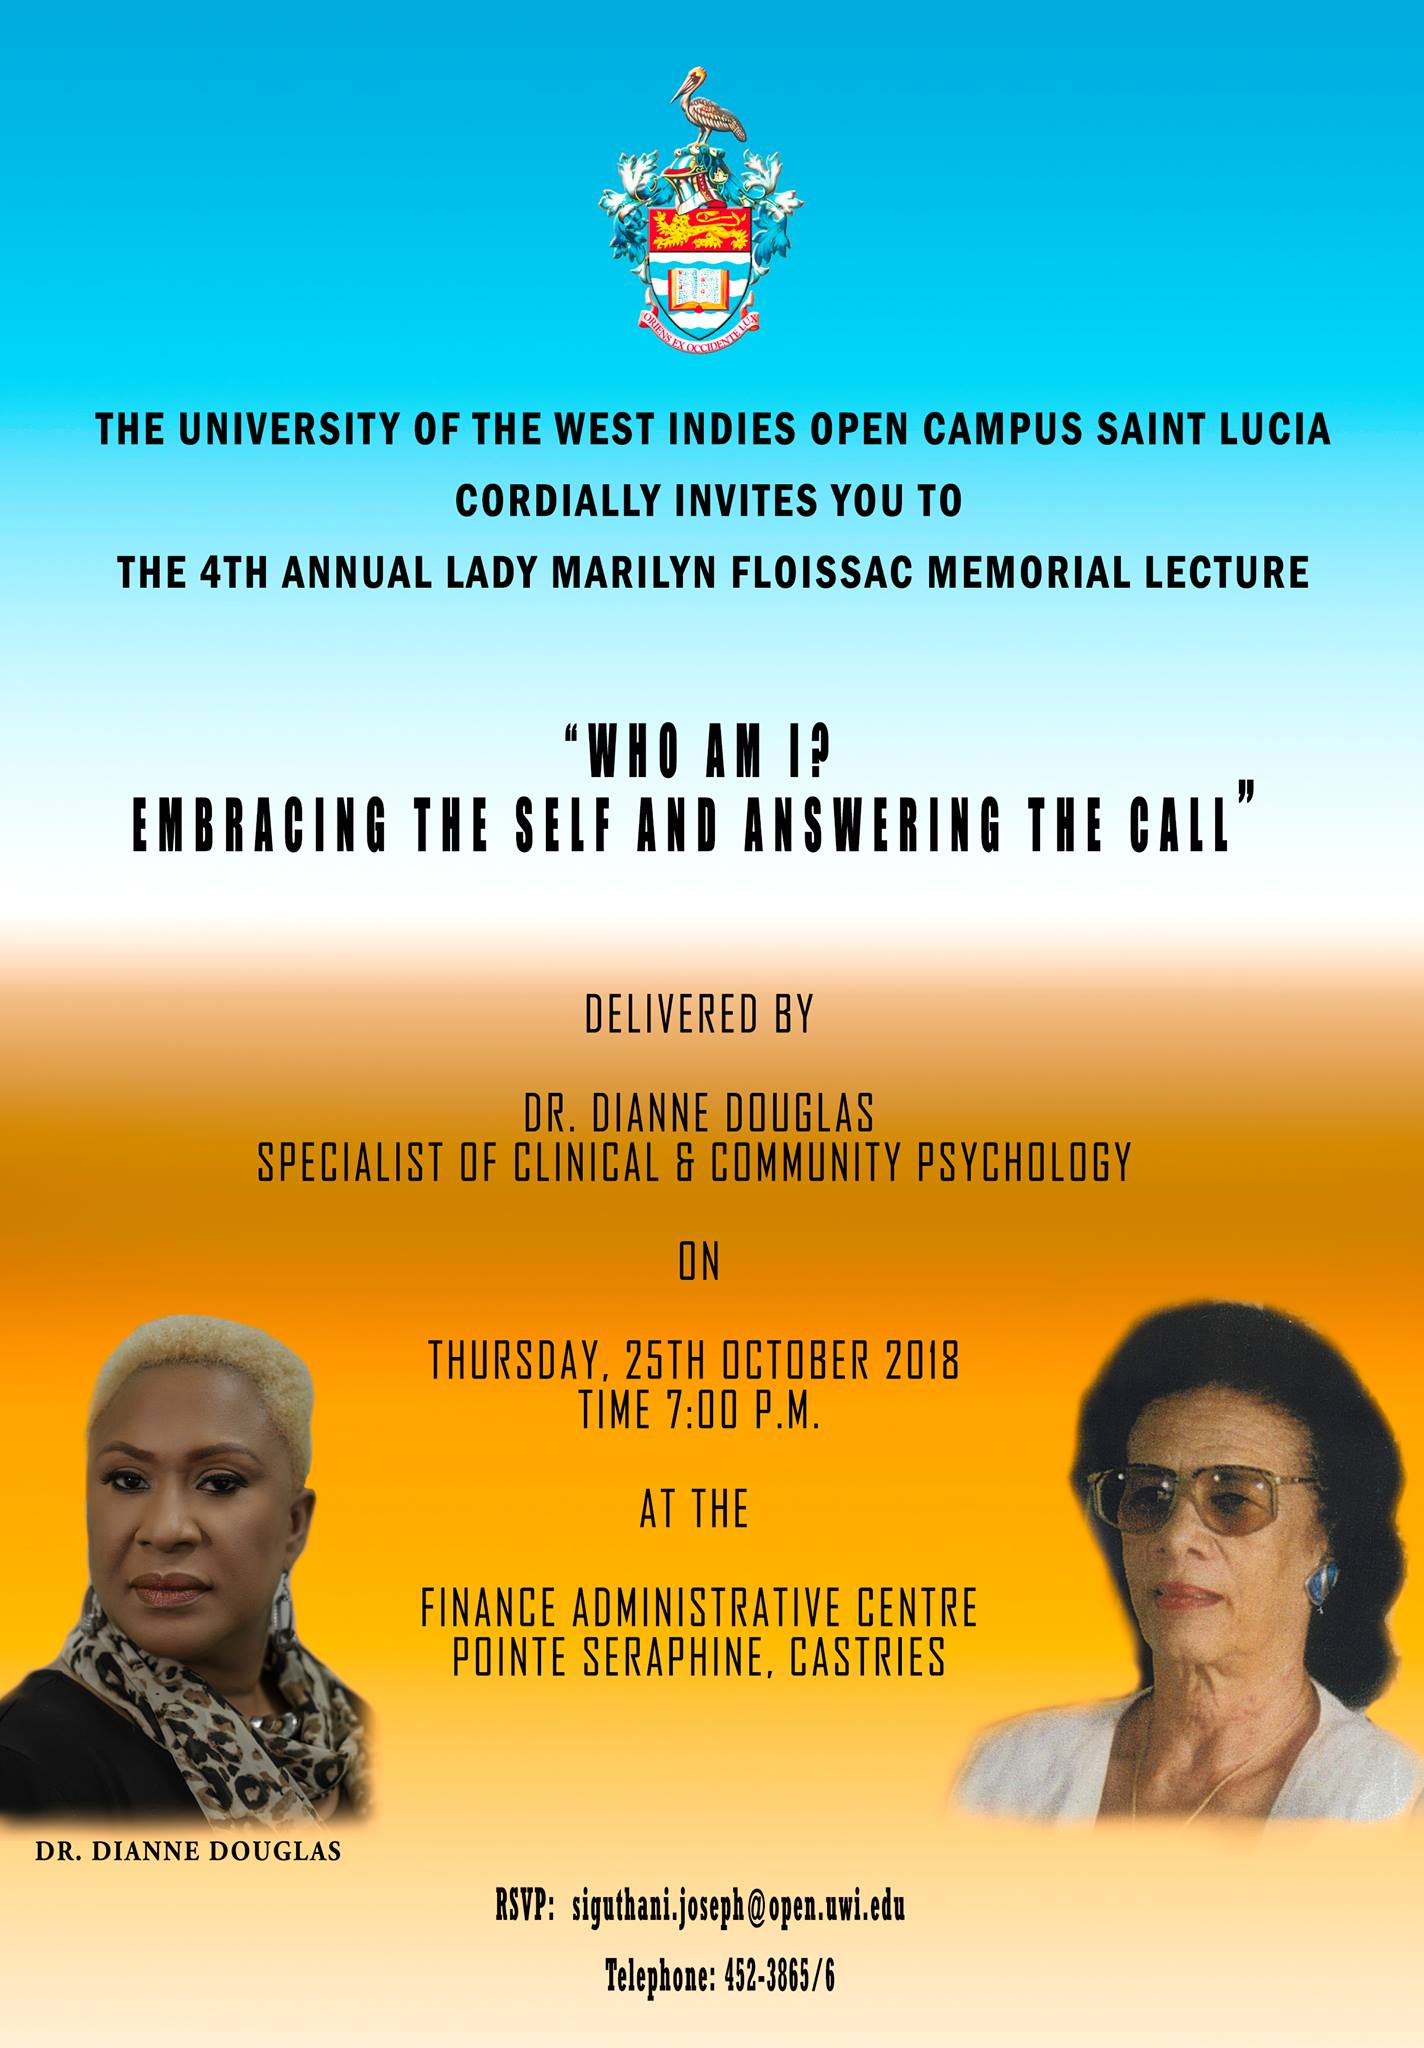 """Who am I ? Embracing the Self and Answering the Call"". A Lecture by Dr. Dianne Douglas, in memory of Lady Marilyn Floissac, former Resident Tutor. All are invited. Admission is free!"